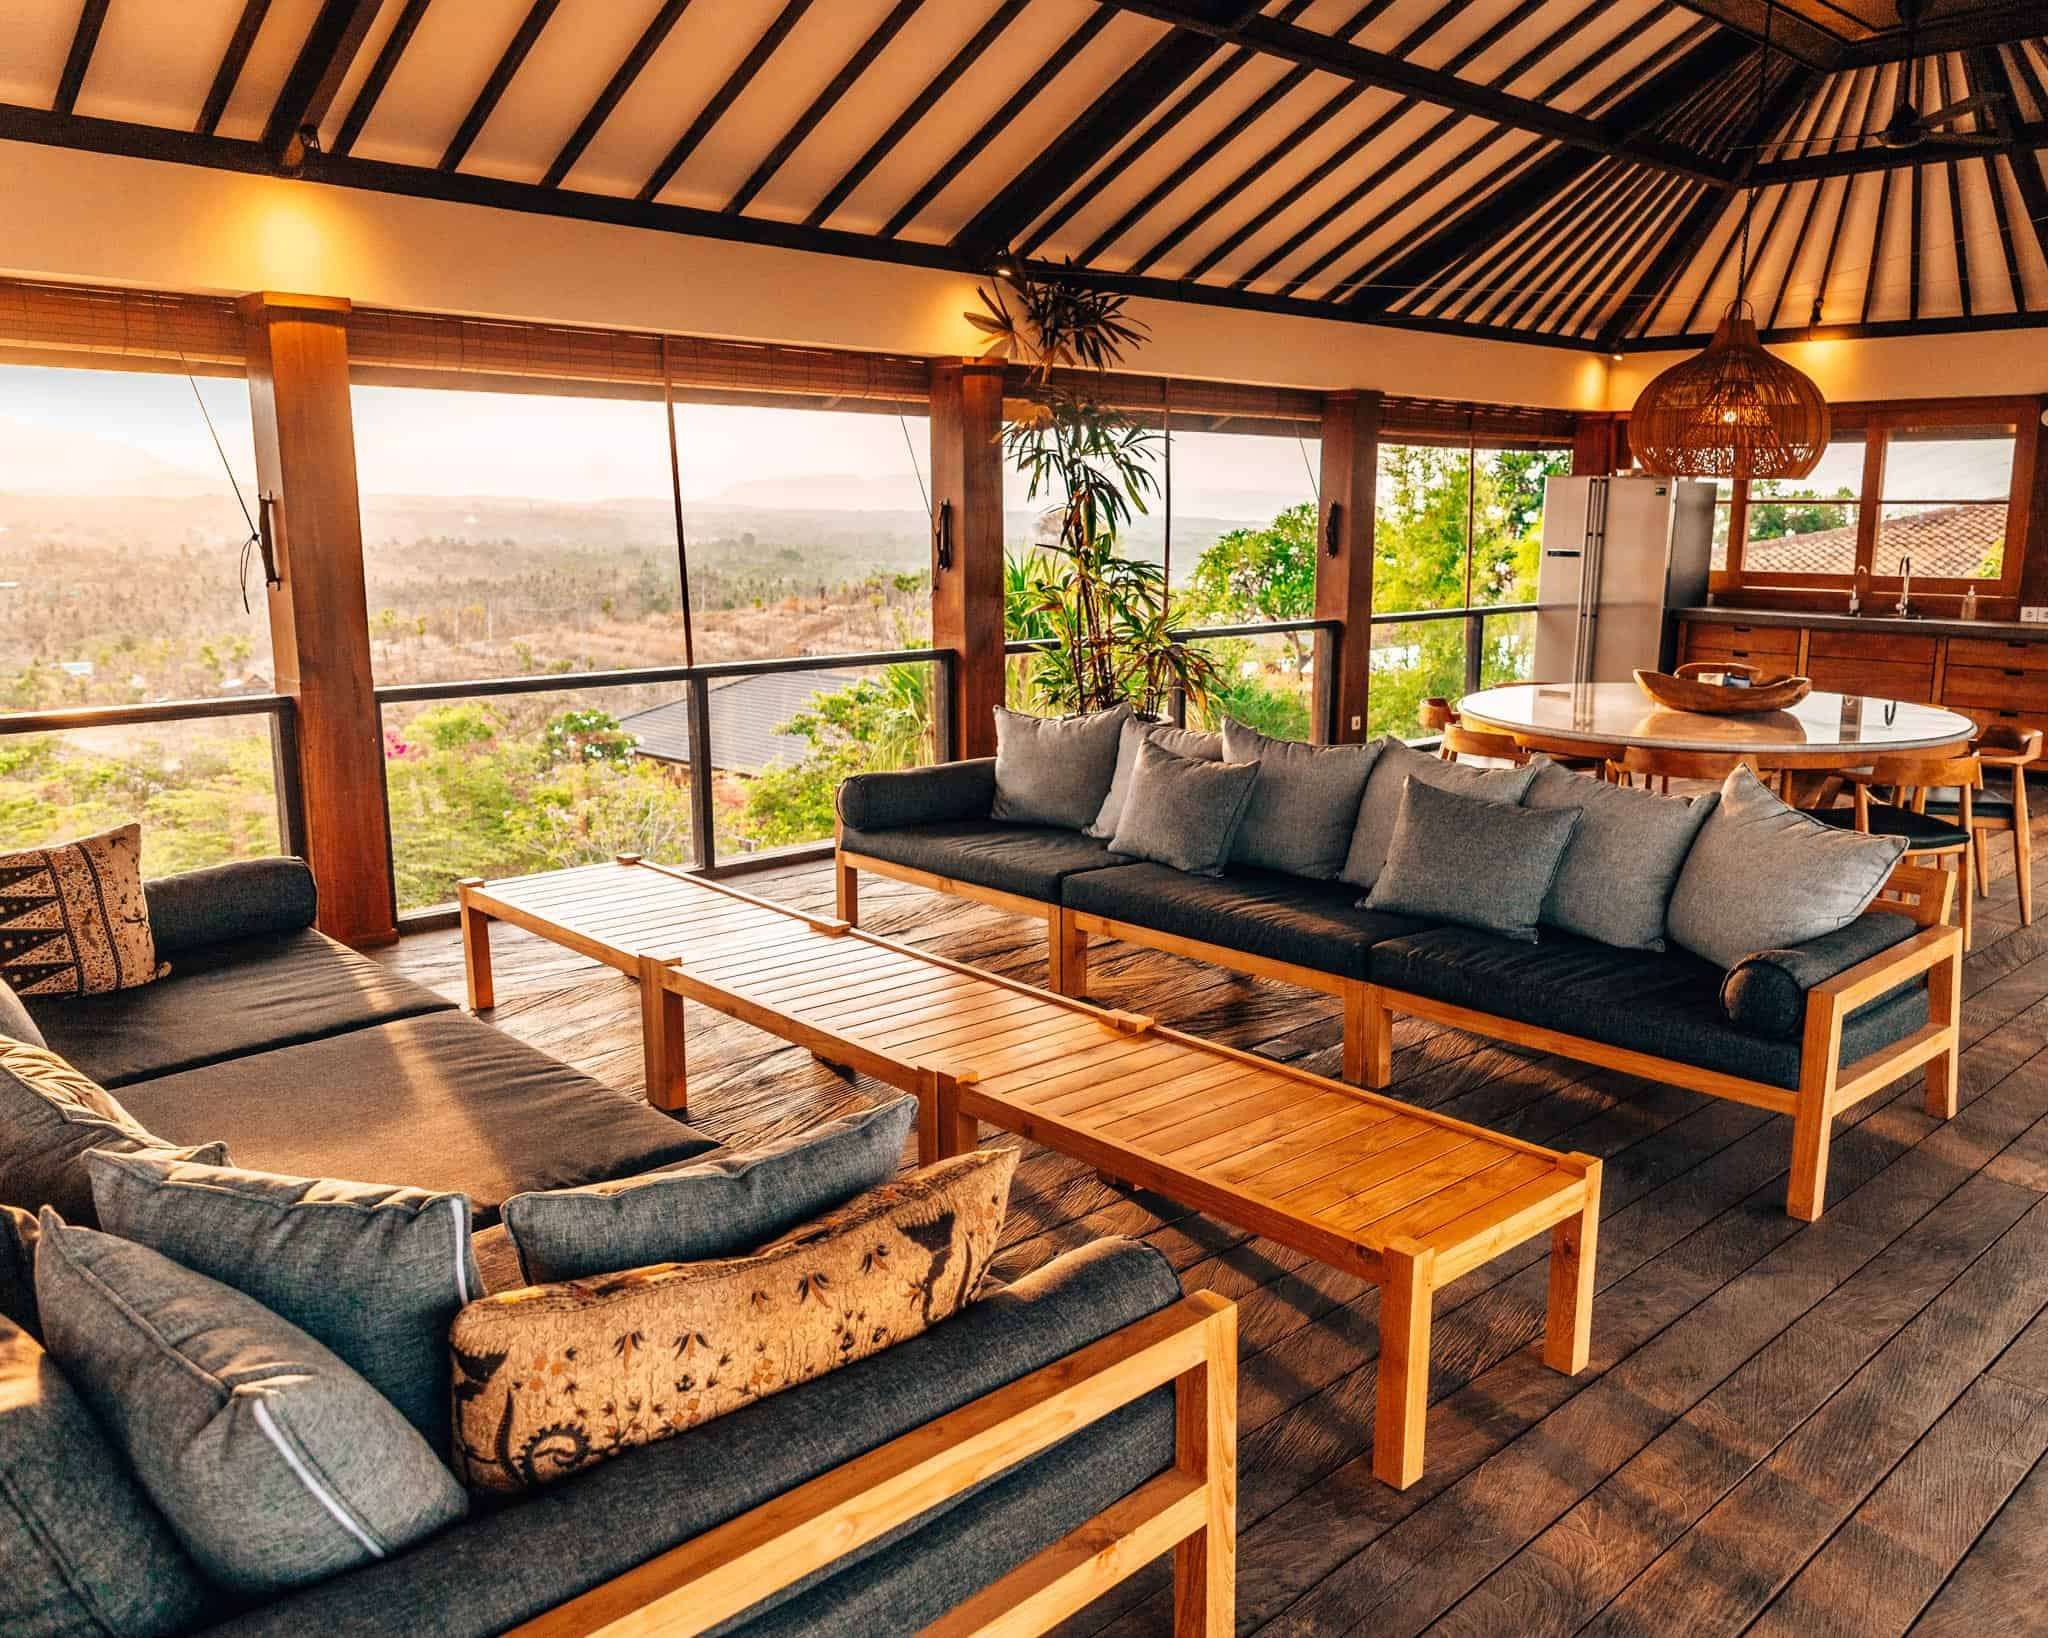 Living Room at Sumberkima Hill Bali Villa - The Next Trip